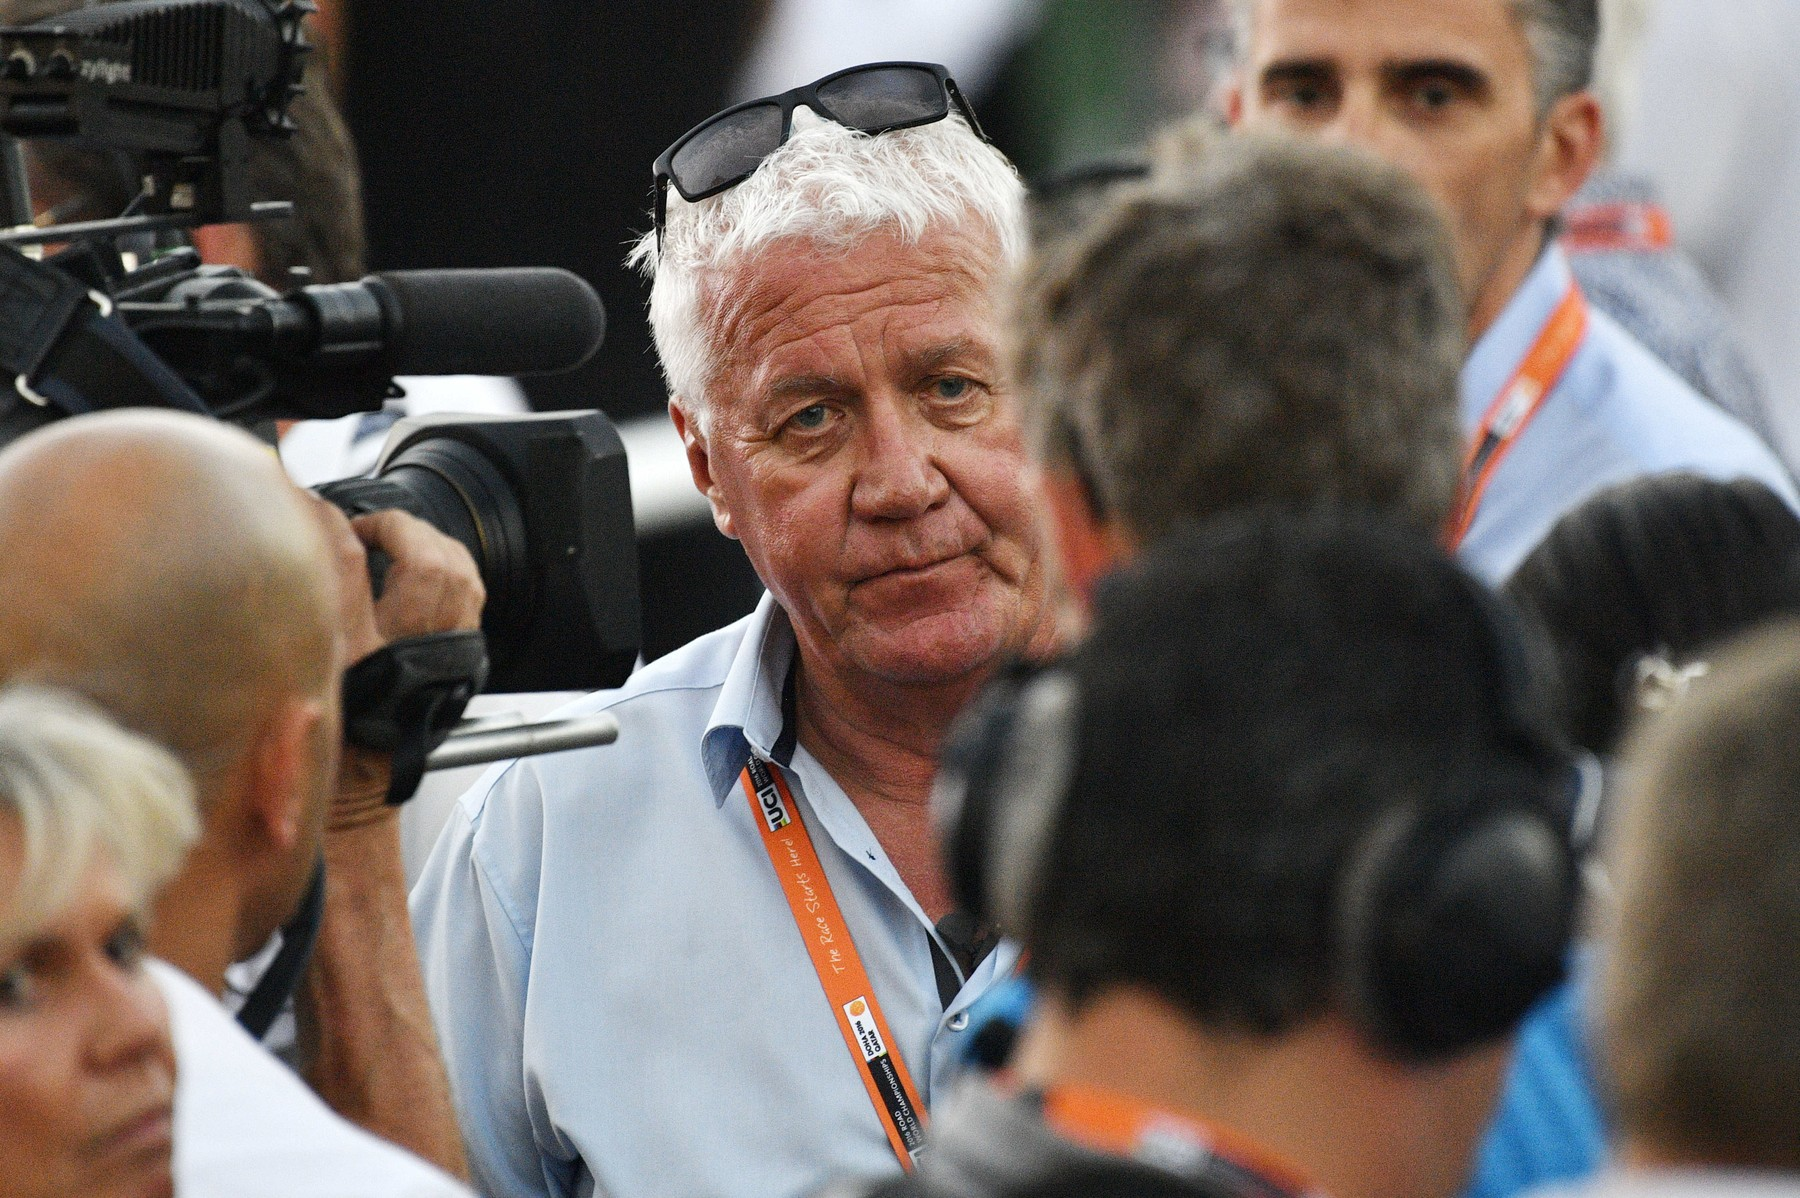 October 16, 2016 - Doha, QATAR - Belgian Patrick Lefevere, General manager of team Etixx - Quick-Step pictured after the men's elite road race at the 2016 UCI World Road World Cycling Championships in Doha, Qatar, a race of 257.5 km from Doha to Doha, Sunday 16 October 2016. BELGA PHOTO YORICK JANSENS, Image: 302972462, License: Rights-managed, Restrictions: * Belgium, France, Germany, Luxembourg and Netherlands Rights OUT *, Model Release: no, Credit line: Profimedia, Zuma Press - News